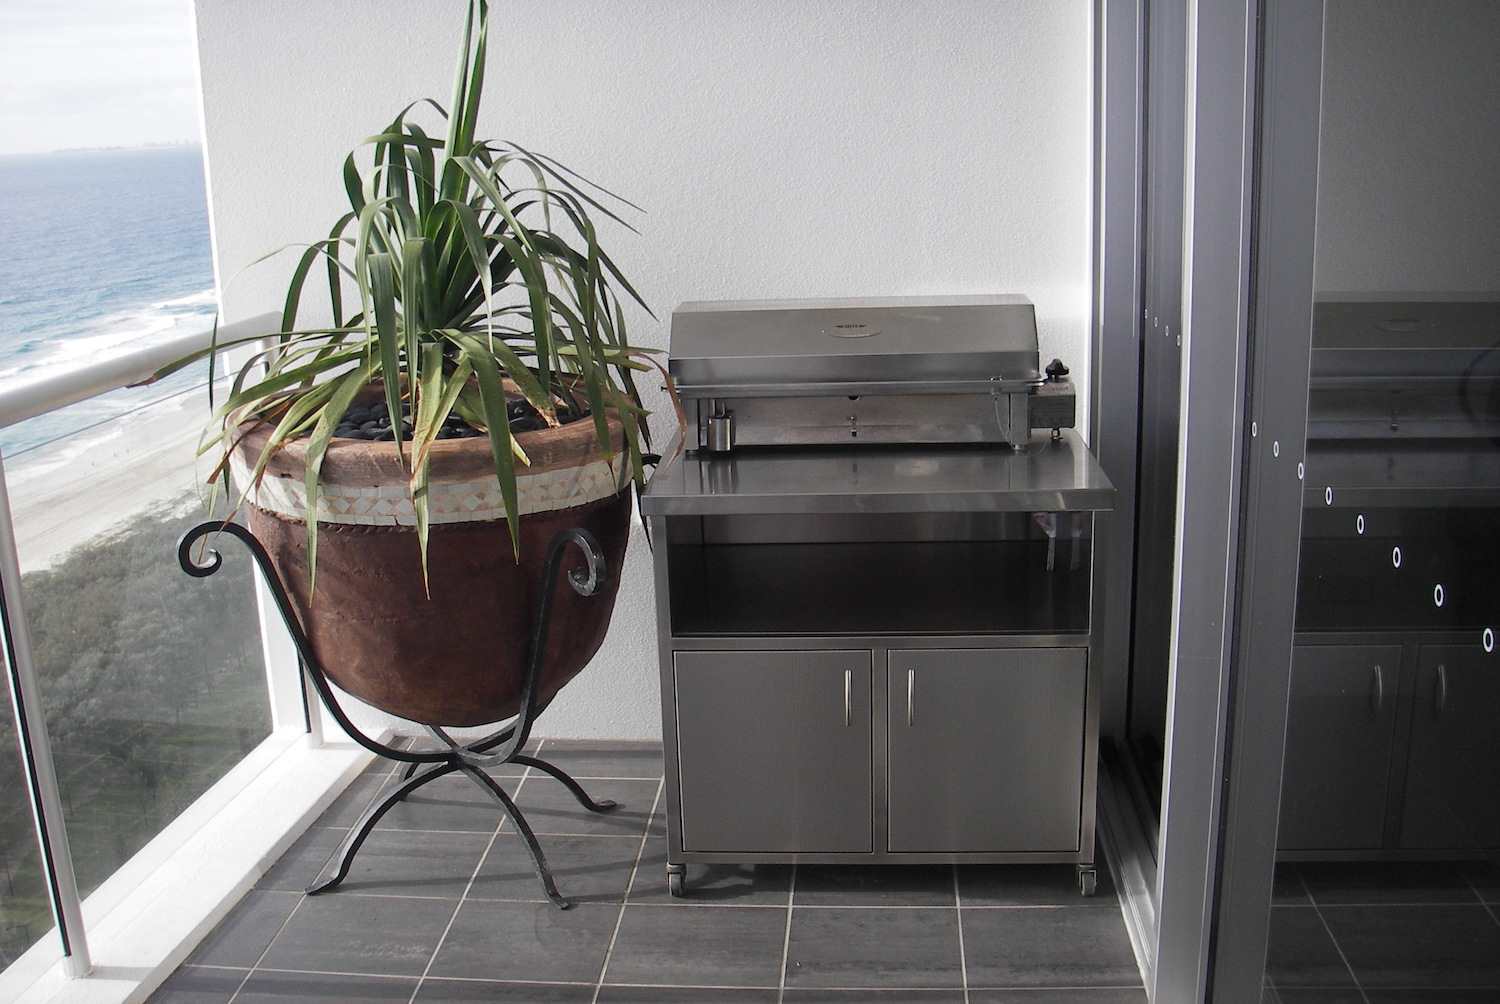 Stainless Steel Balcony BBQ-Cookout Residential BBQ